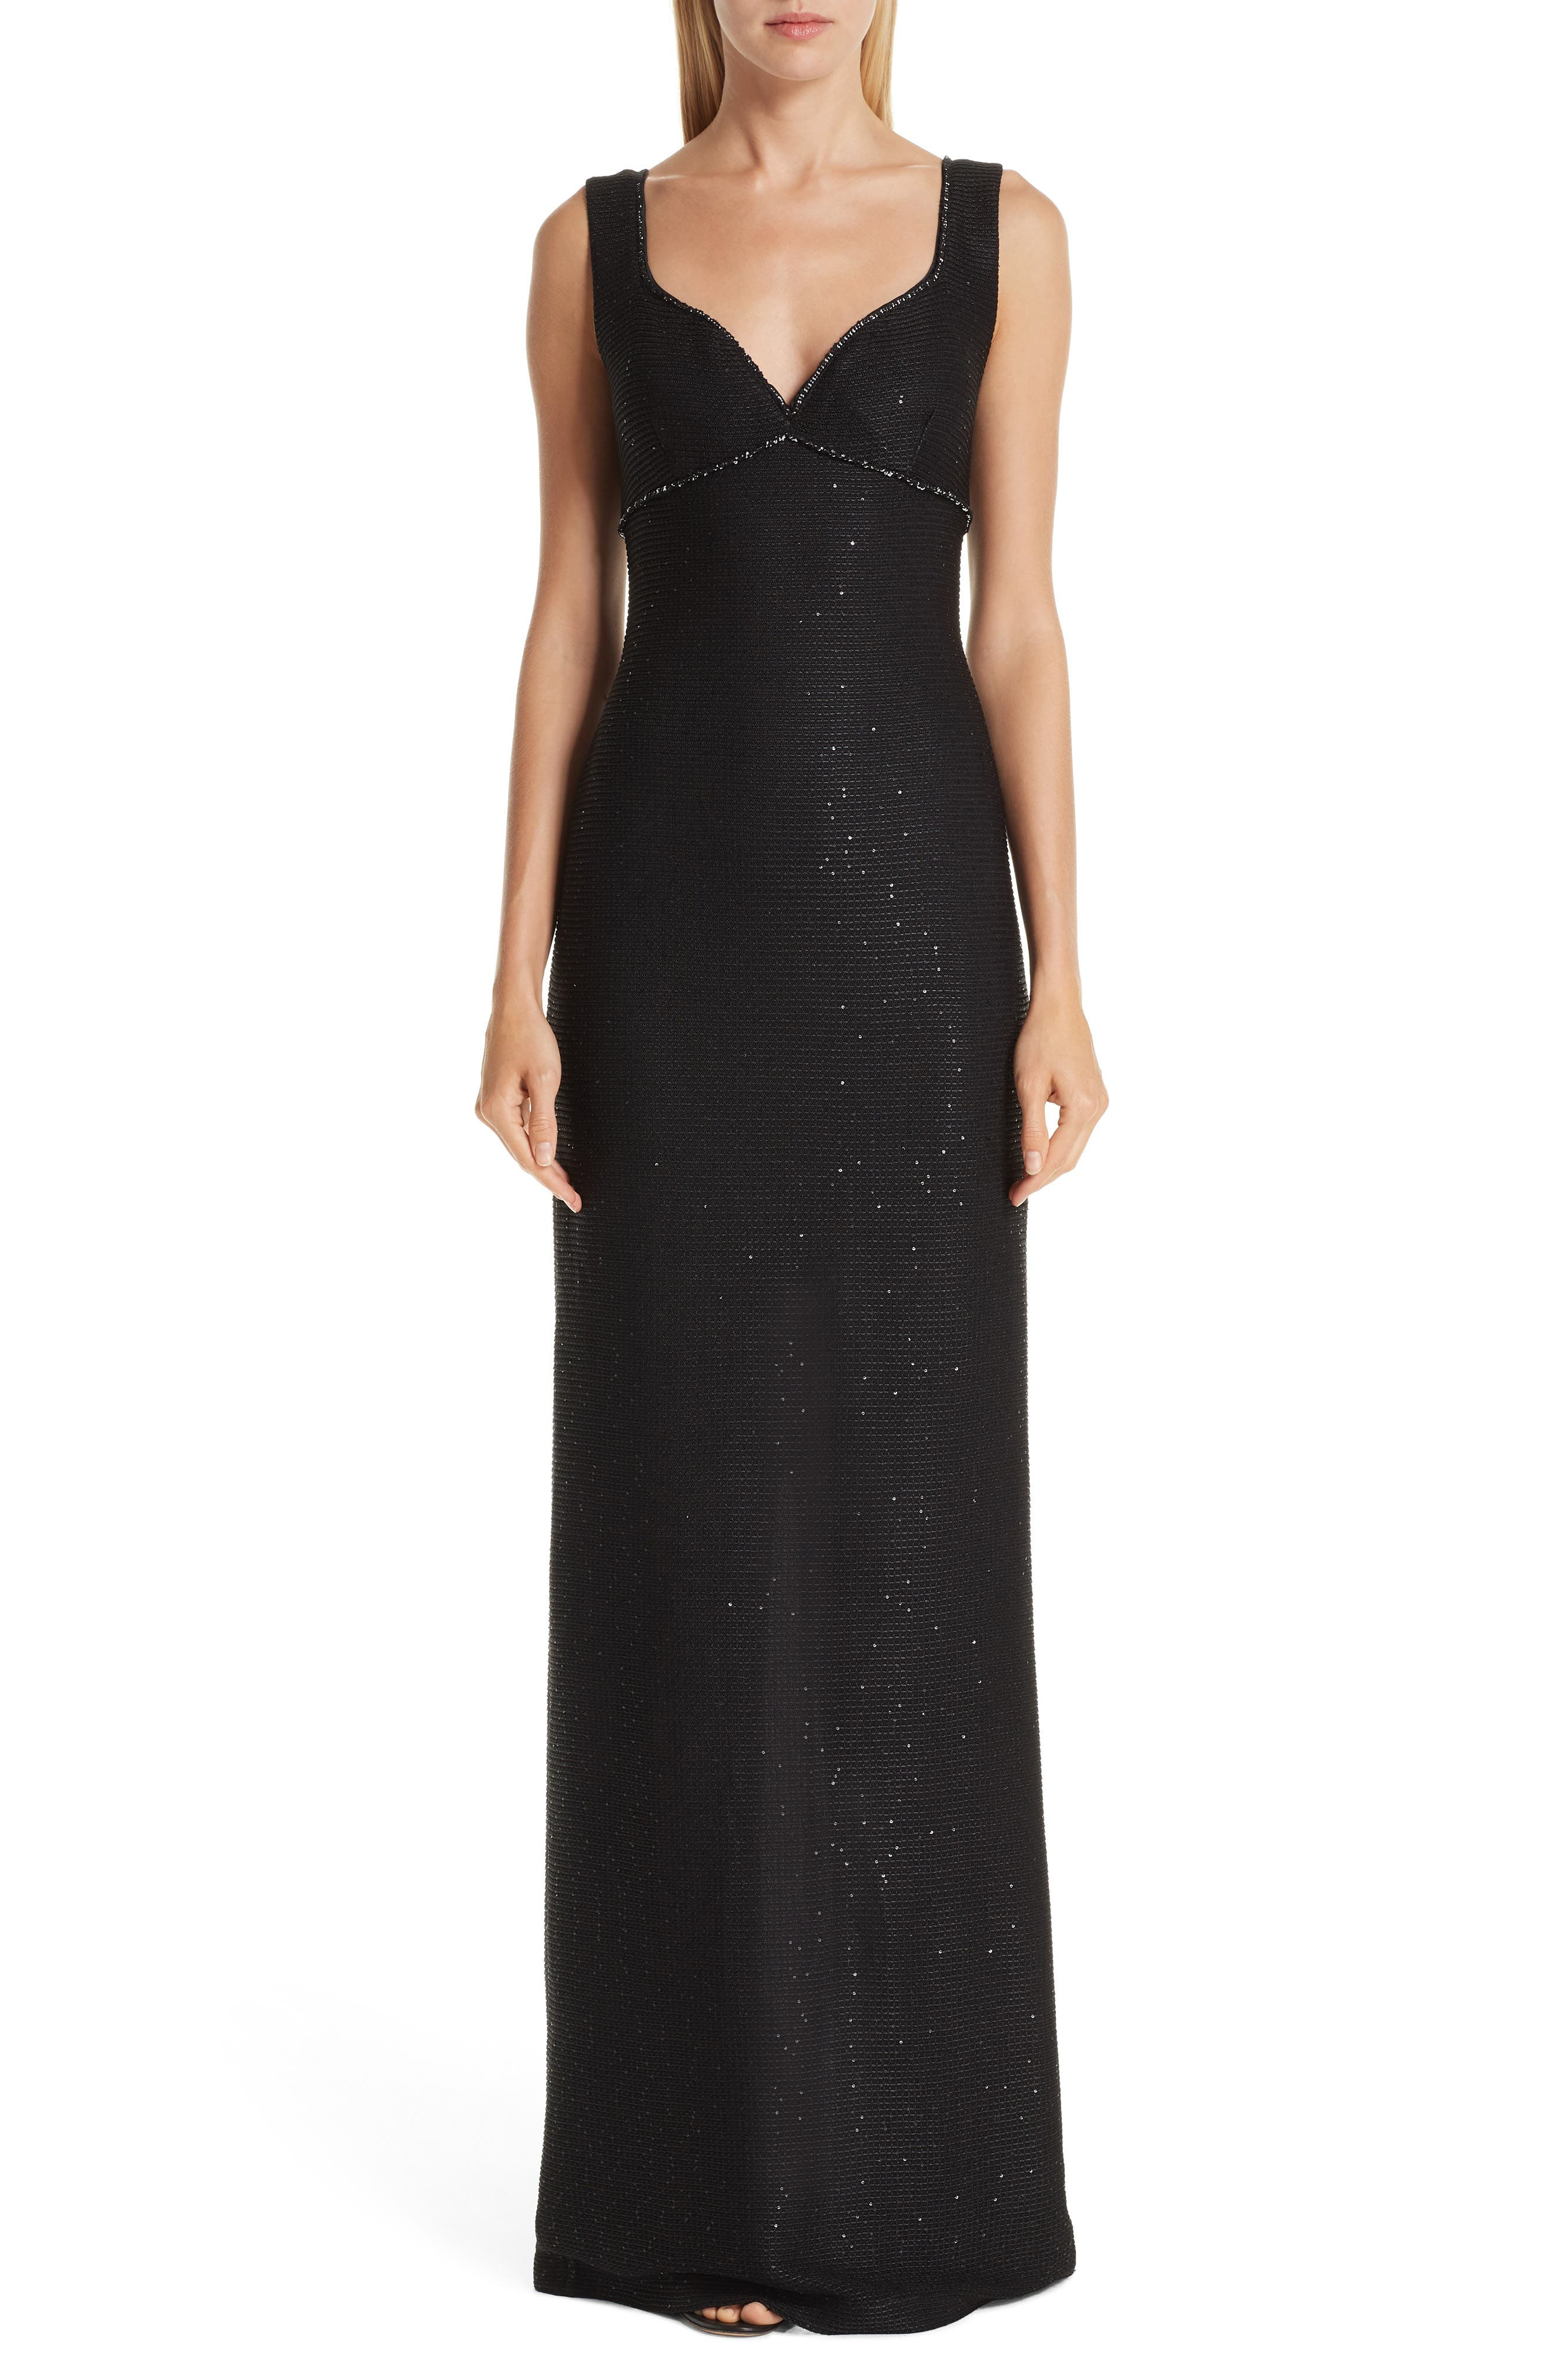 St. John Collection Links Sequin Knit Gown